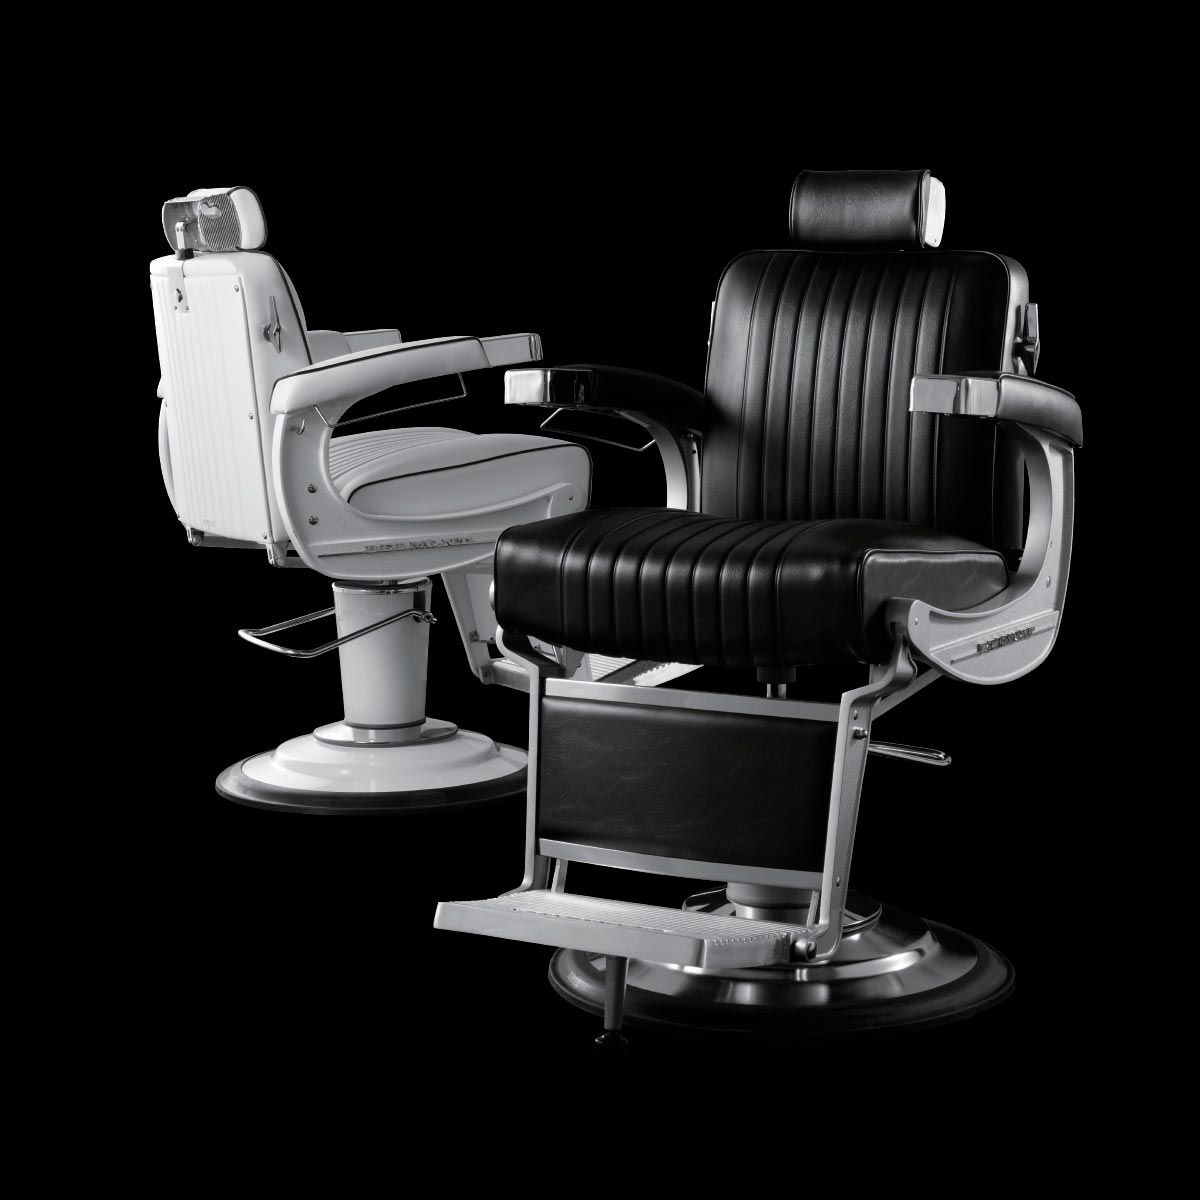 Takara Belmont Elegance Barber Chair with Recliner alternative product image 6